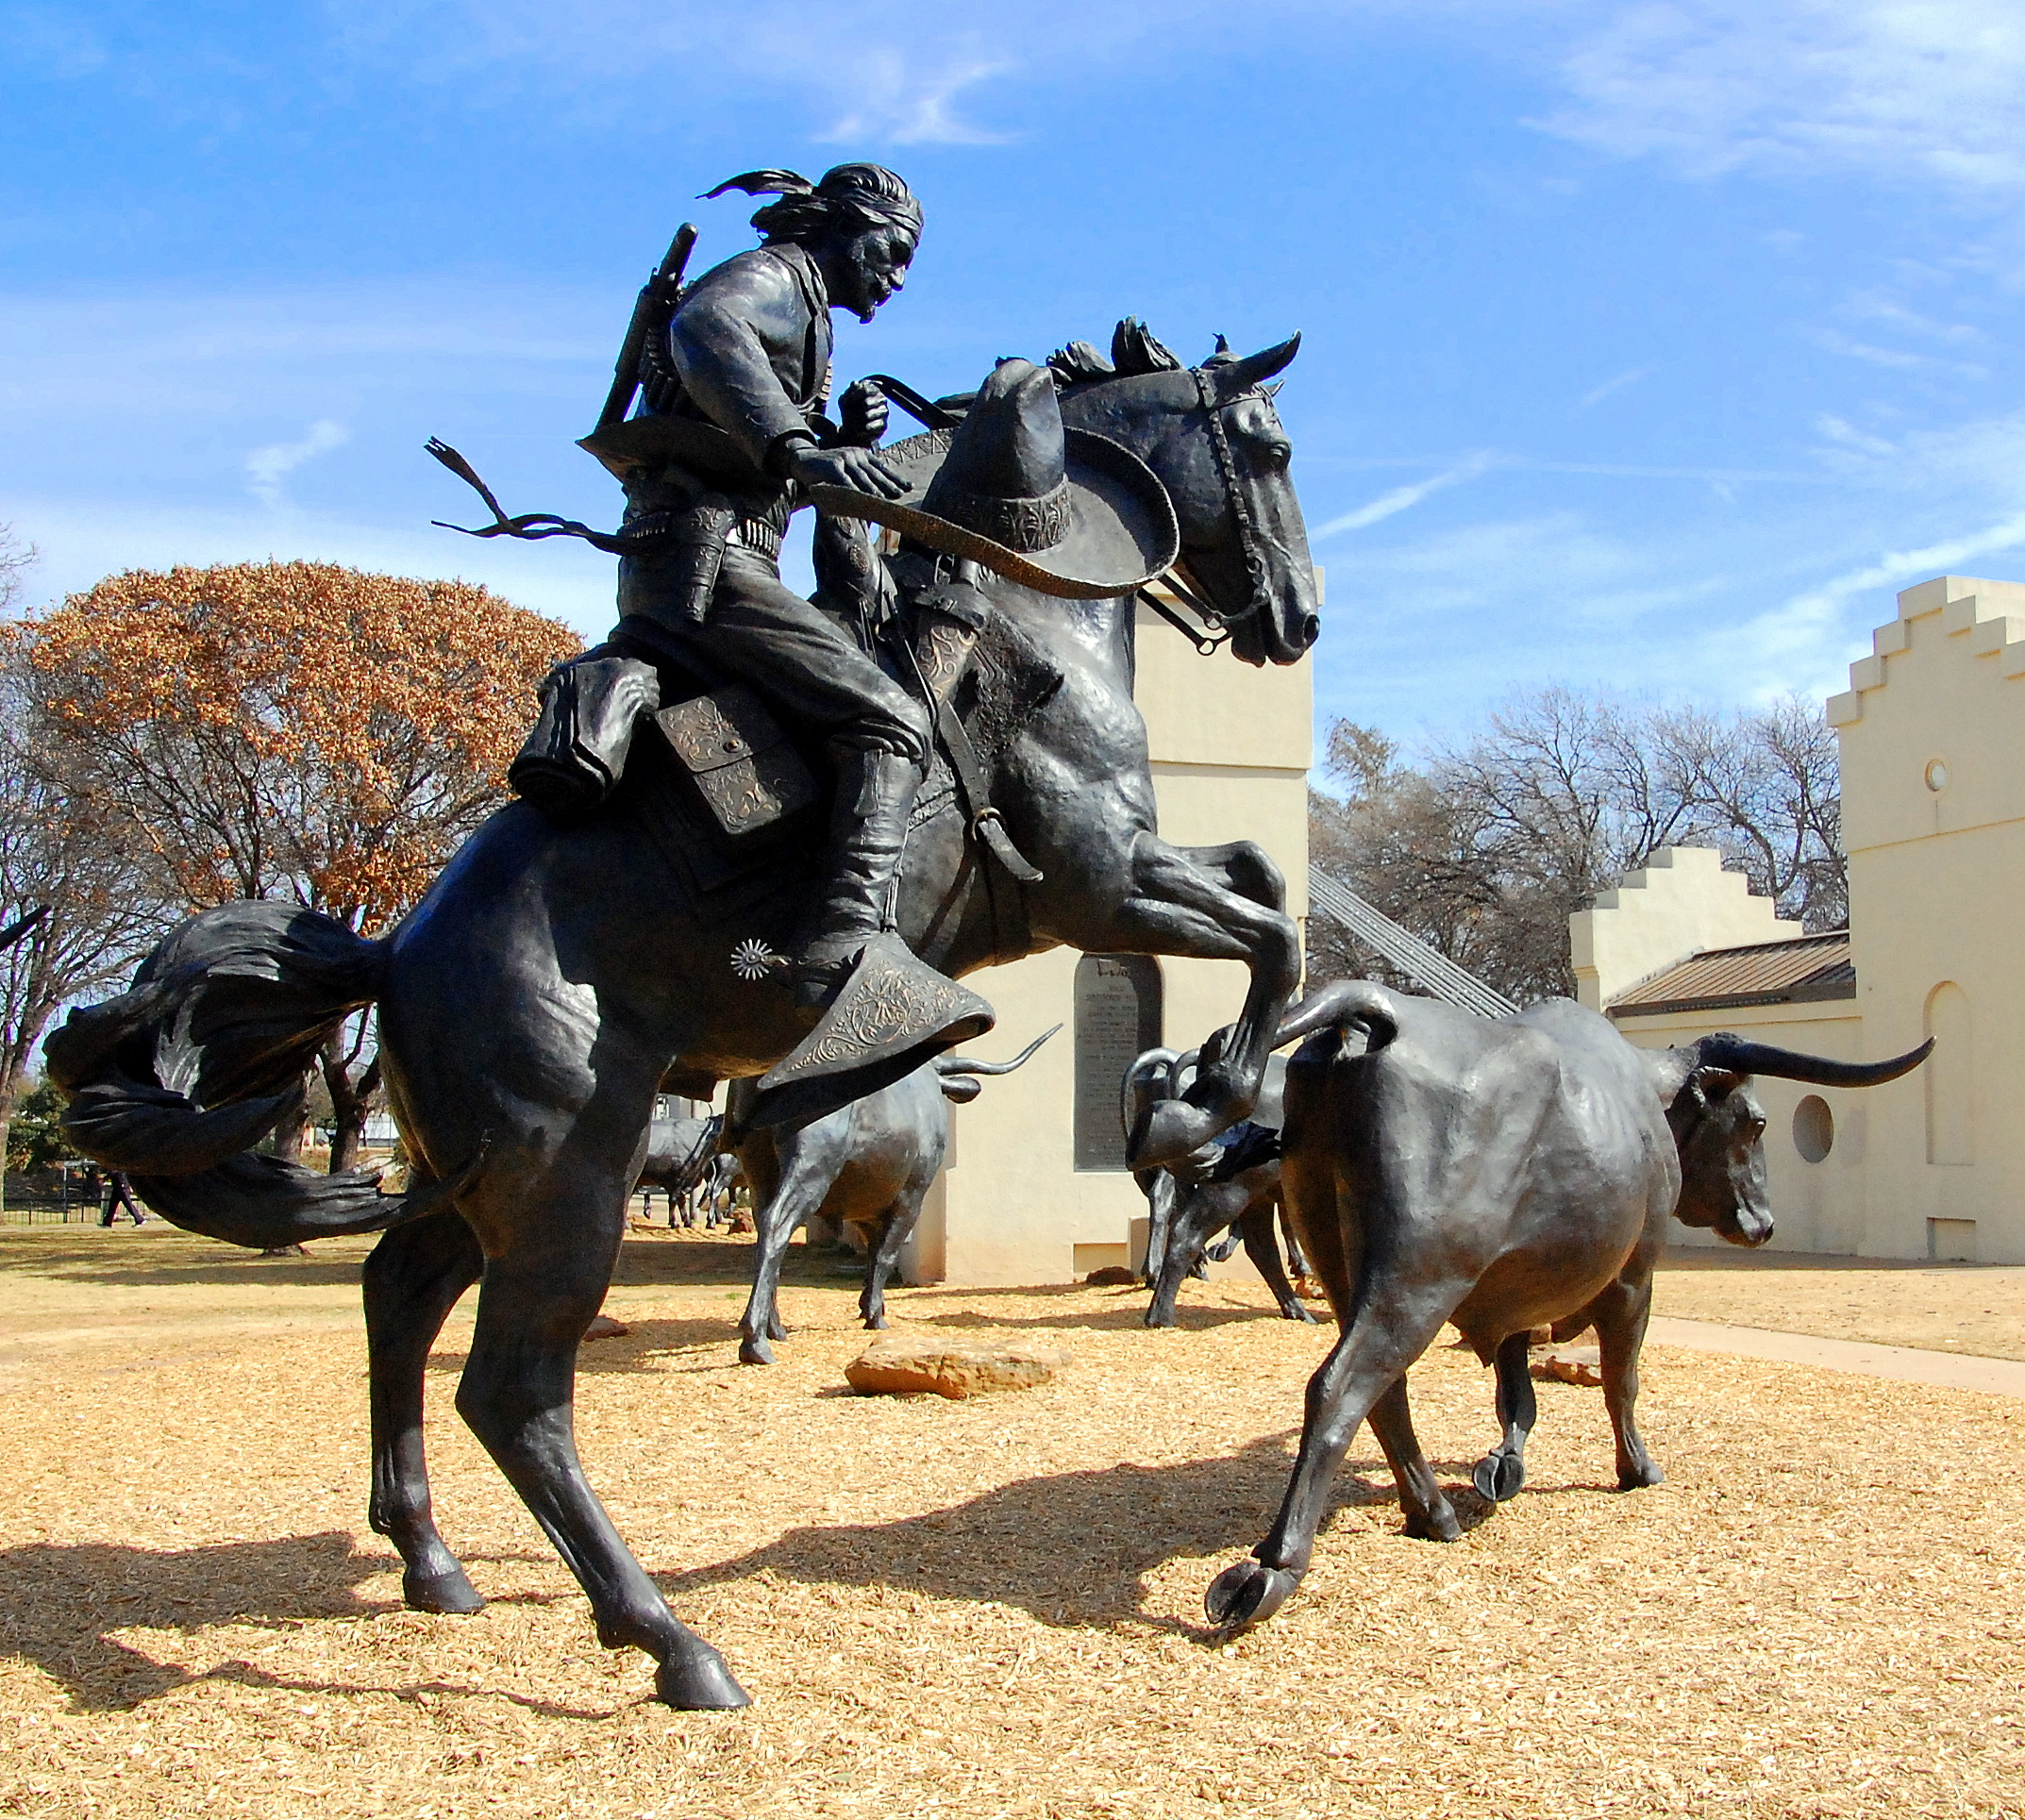 Vaquero statue in the Branding the Brazos project